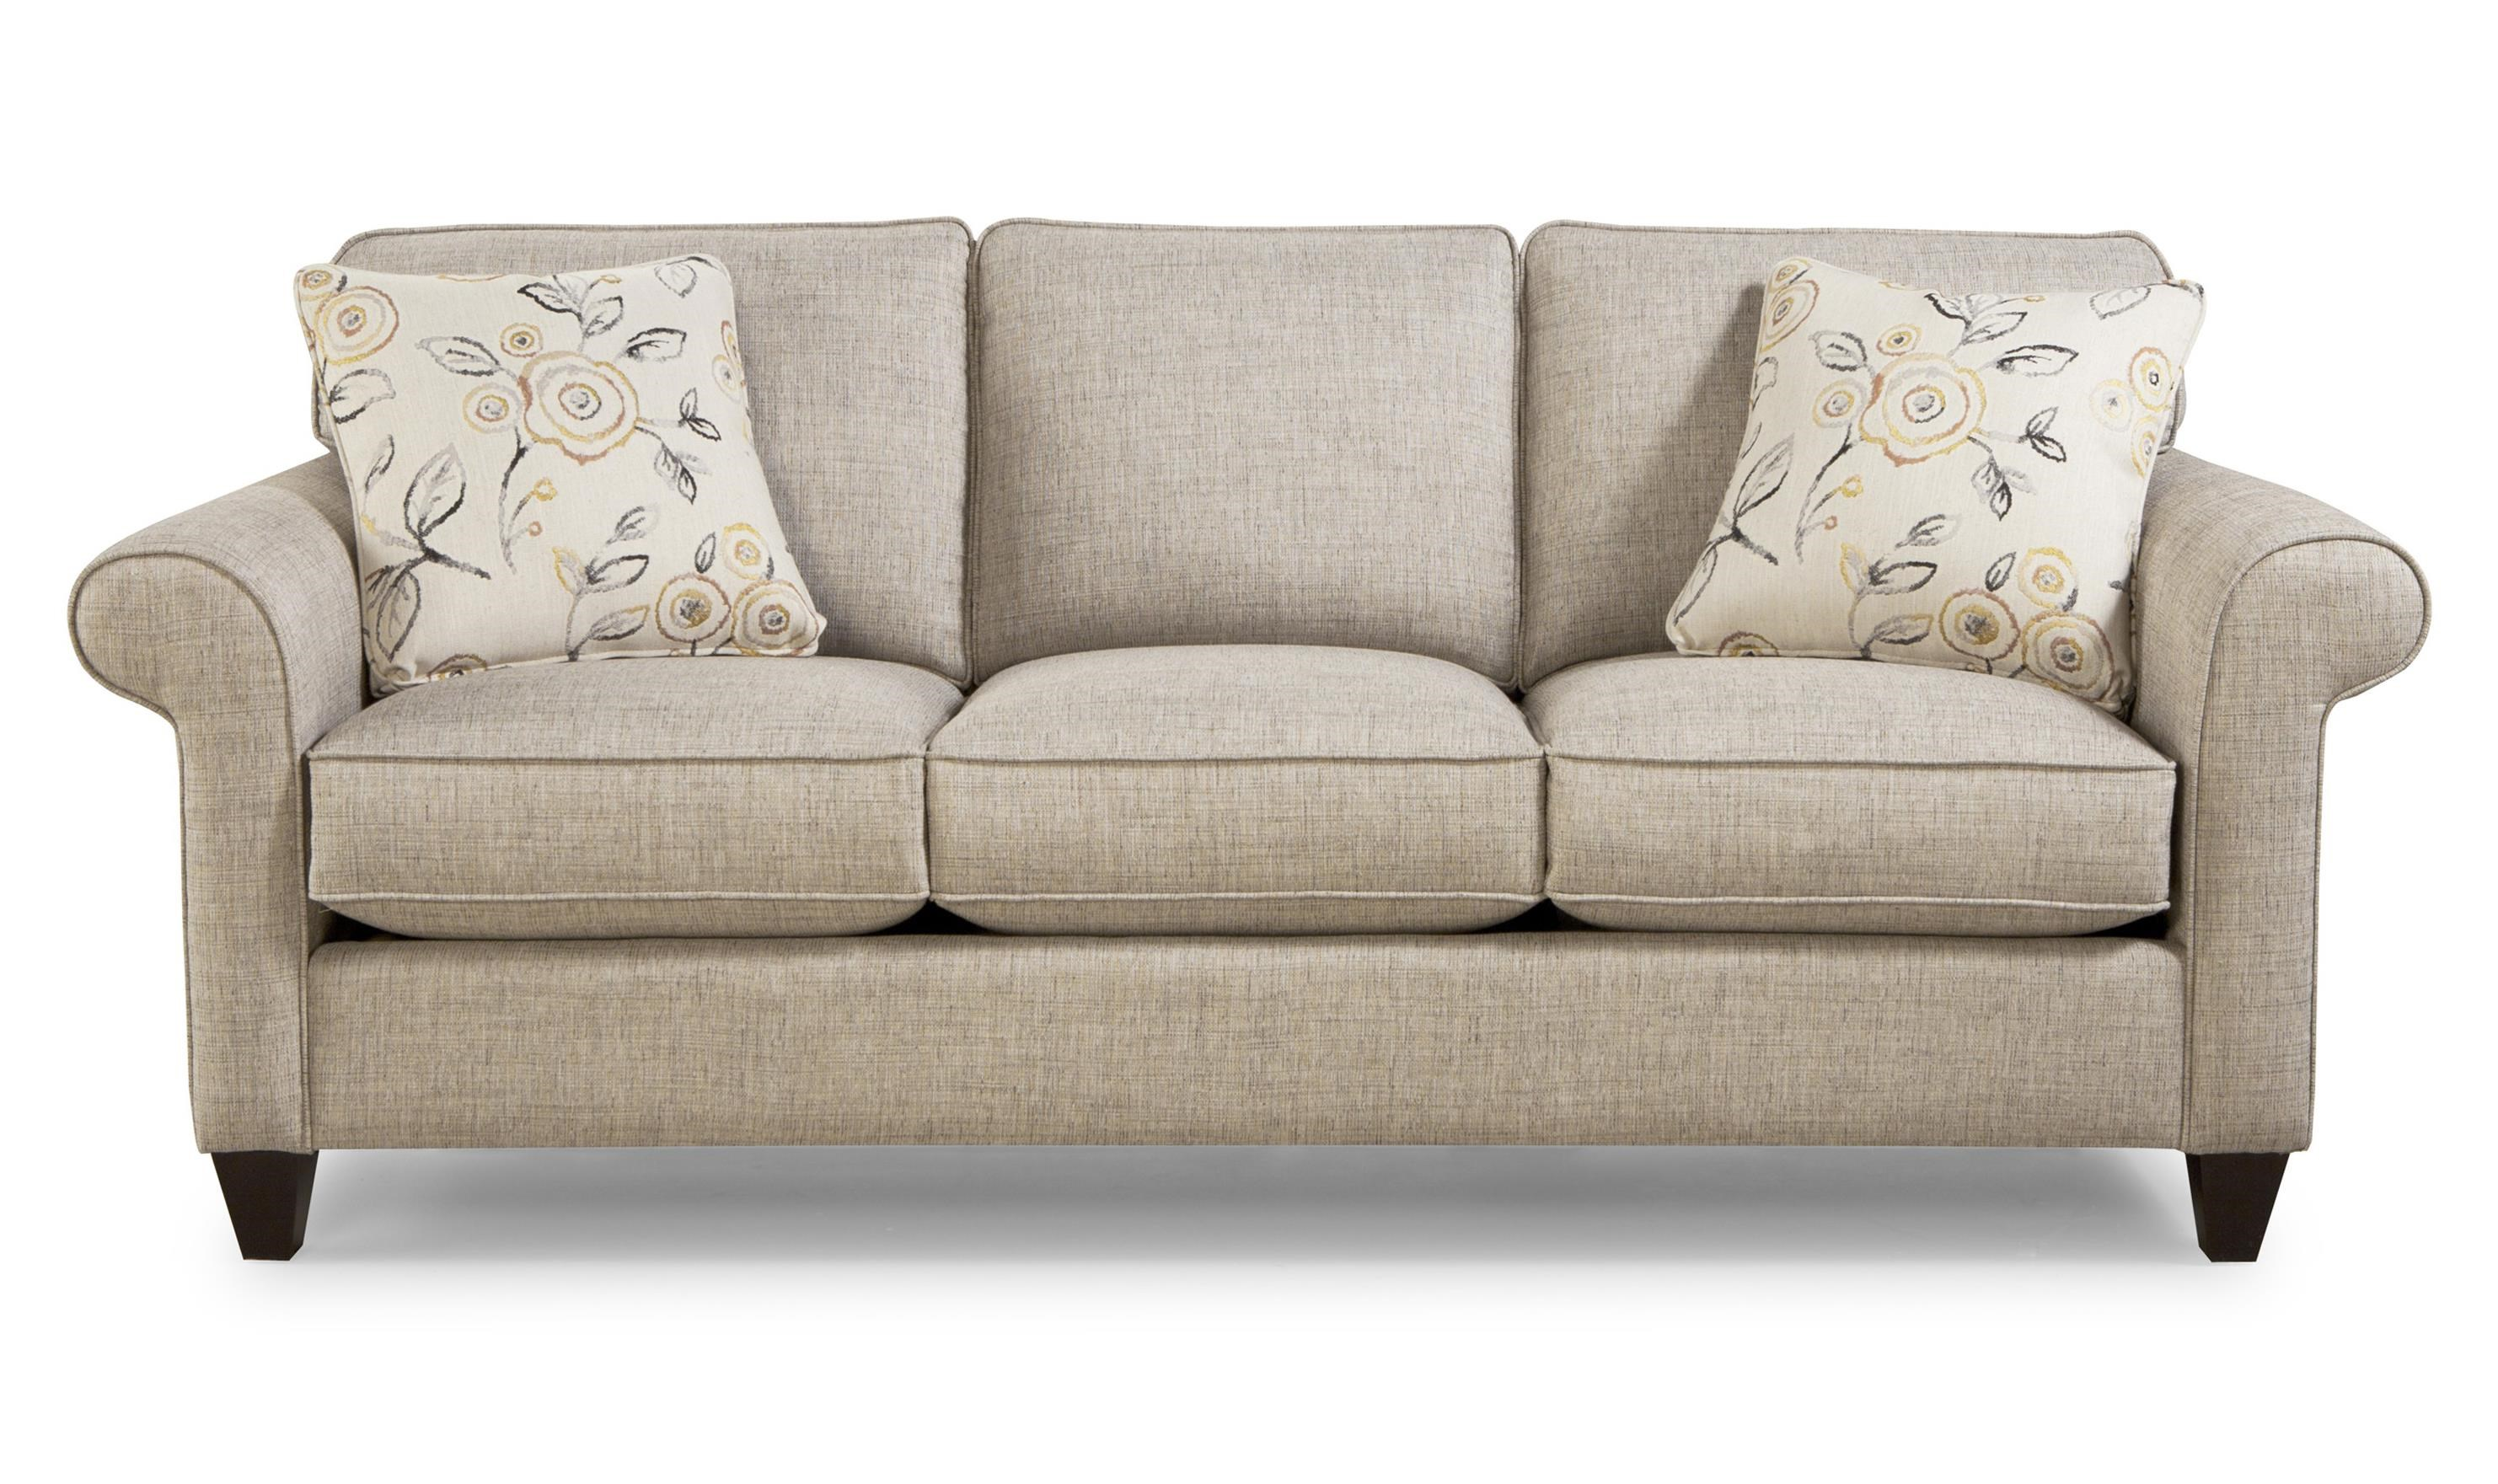 Transitional Sleeper Sofa with Sock-Rolled Arms and Memoryfoam Mattress